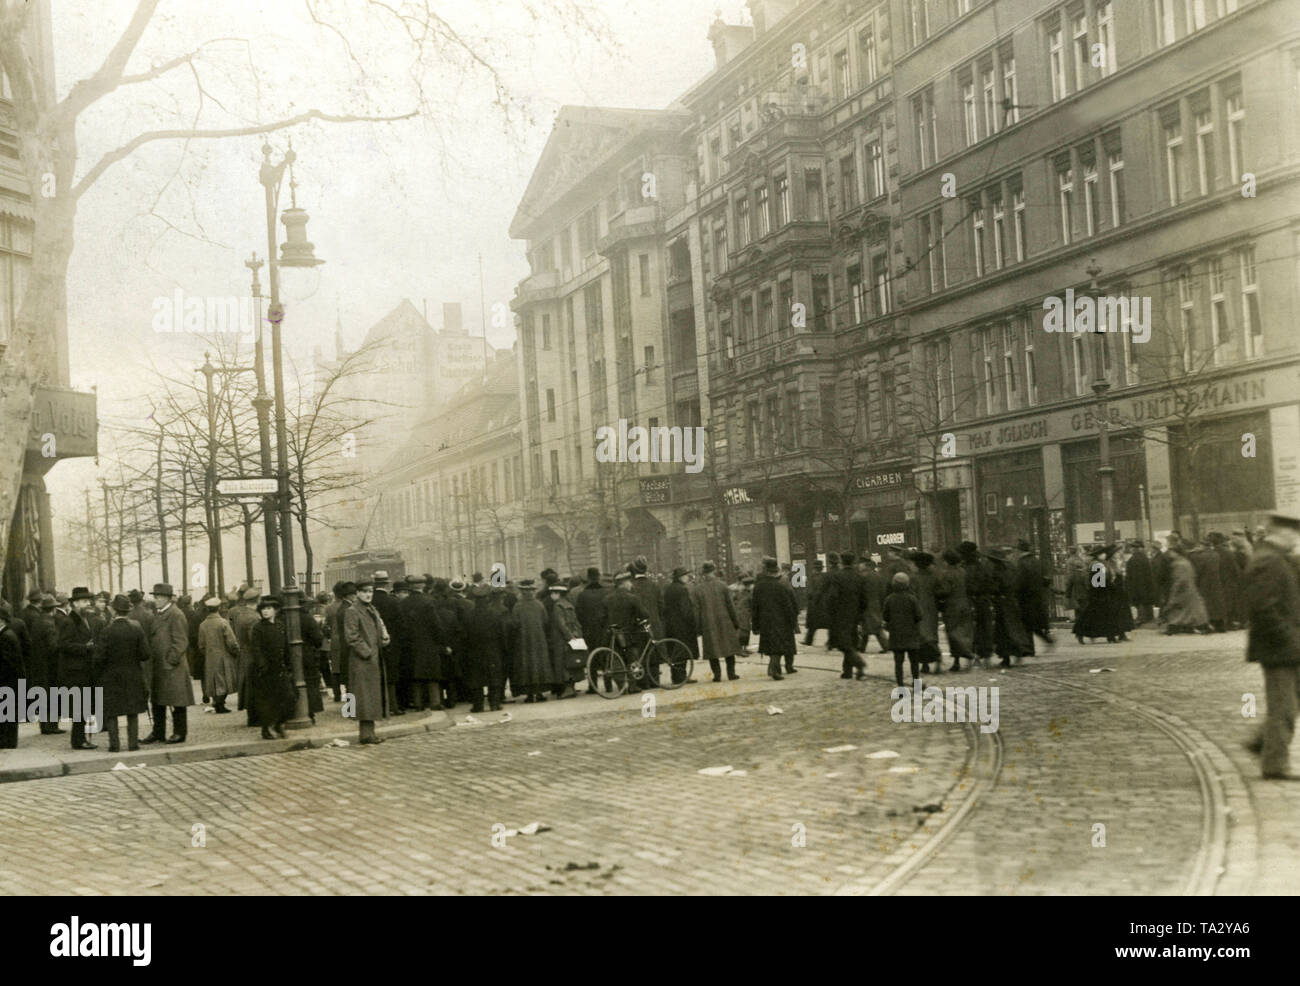 "A group of onlookers observes the events before the ""Vorwaerts building"" in Lindenstrasse. During the January uprising, there were armed conflicts between left-wing revolutionaries and government-loyal Freikorps units in the Berlin Zeitungsviertel (newspaper quarter). Stock Photo"